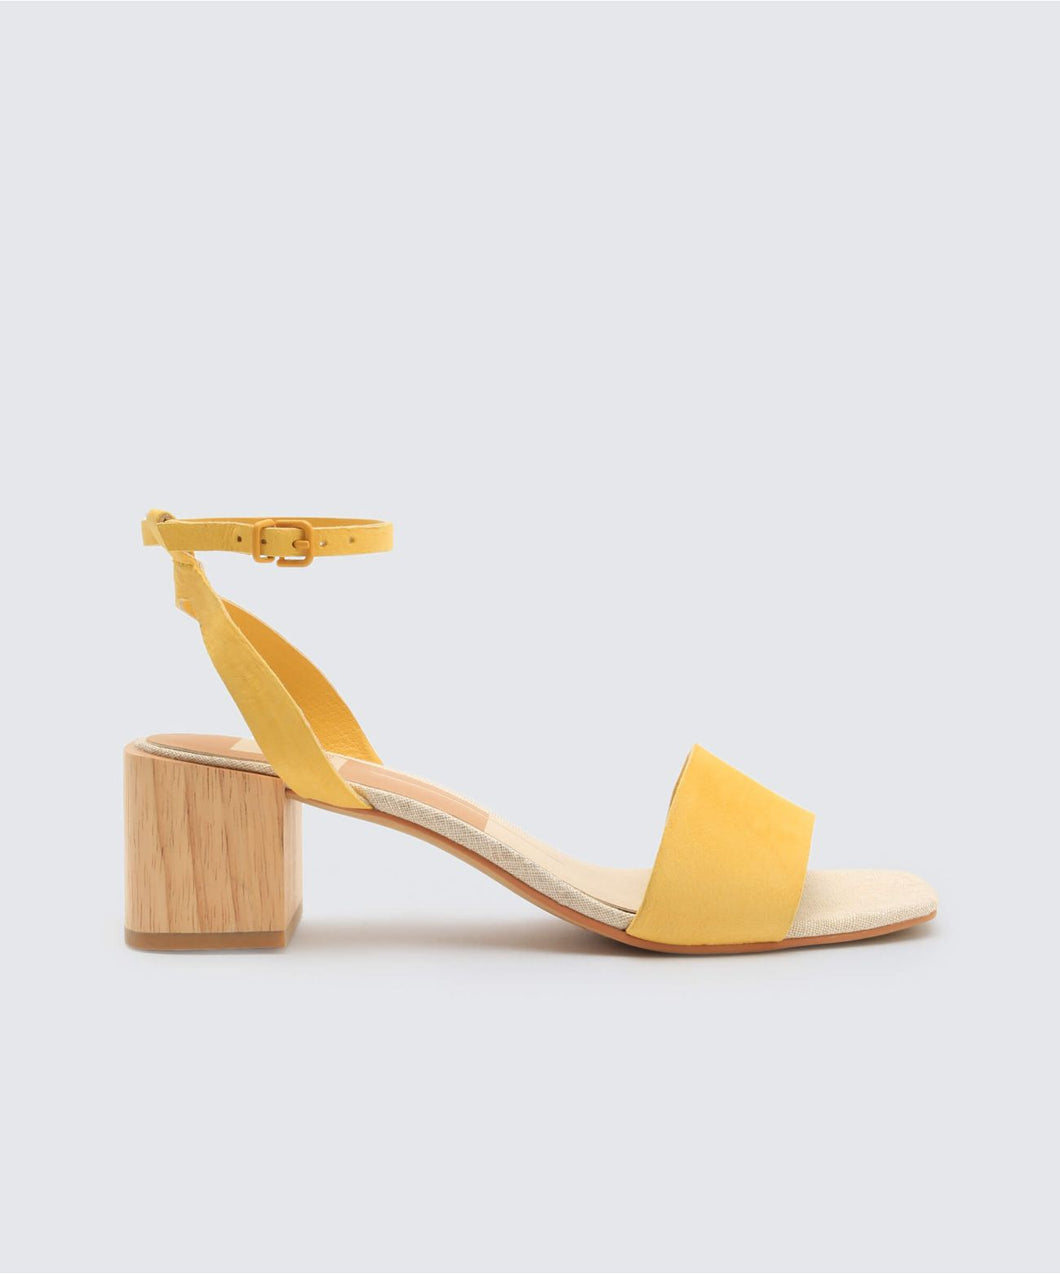 ZARITA SANDALS IN YELLOW -   Dolce Vita